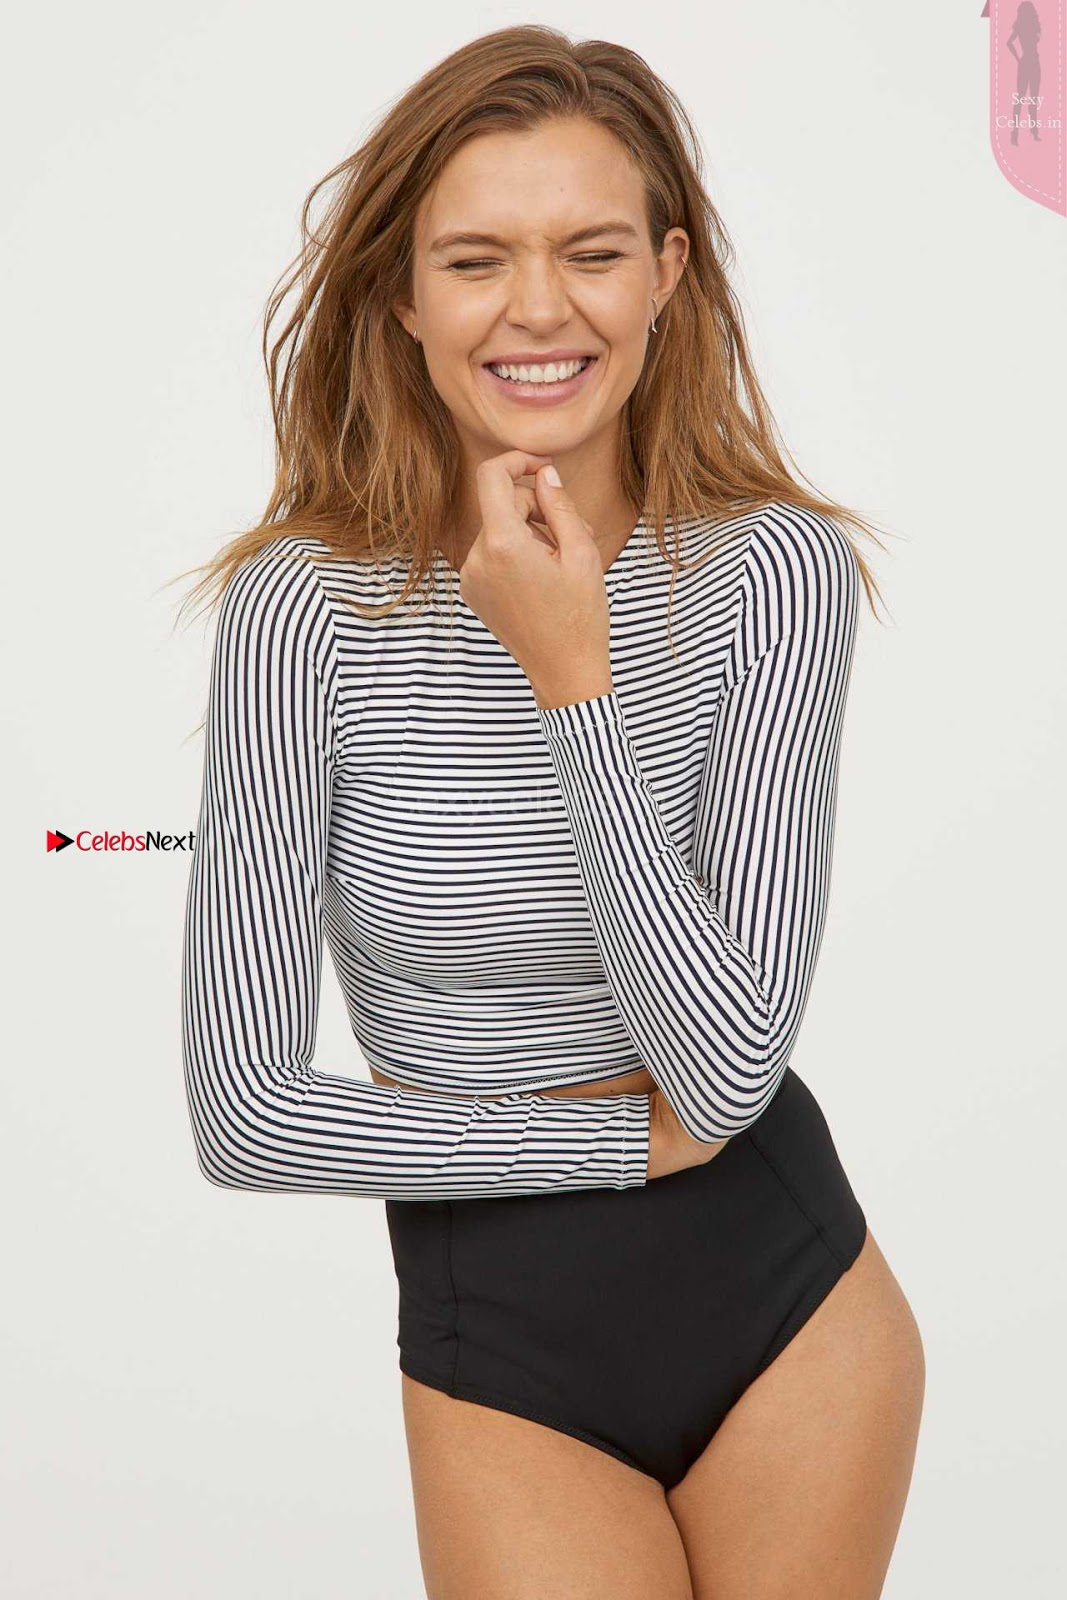 Josephine Skriver Cleavages Boobs Hot huge ass in H n M Swimwear 2018 Campaign ~ SexyCelebs.in Exclusive